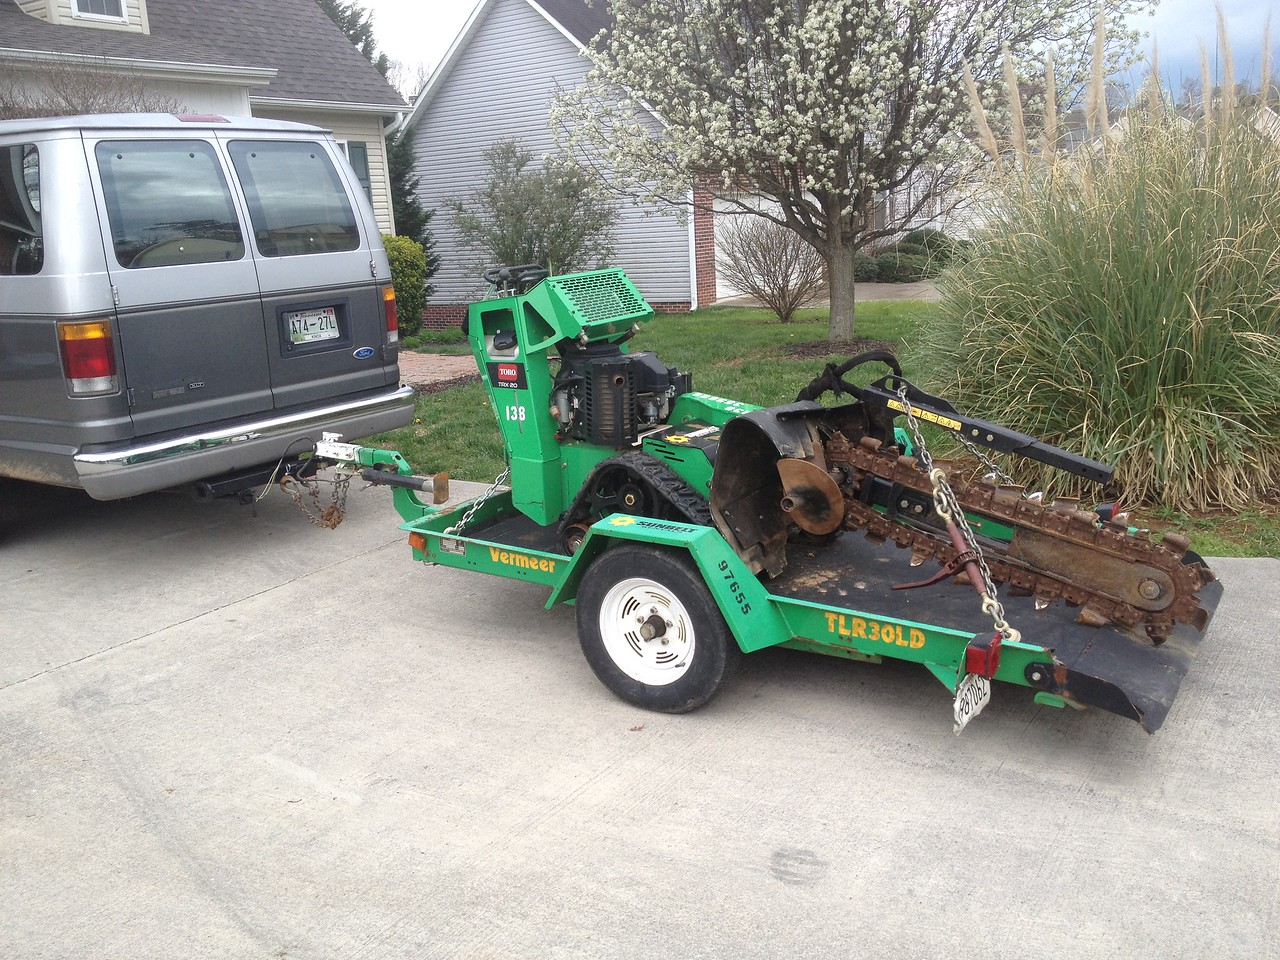 New plan: Rent a power trencher